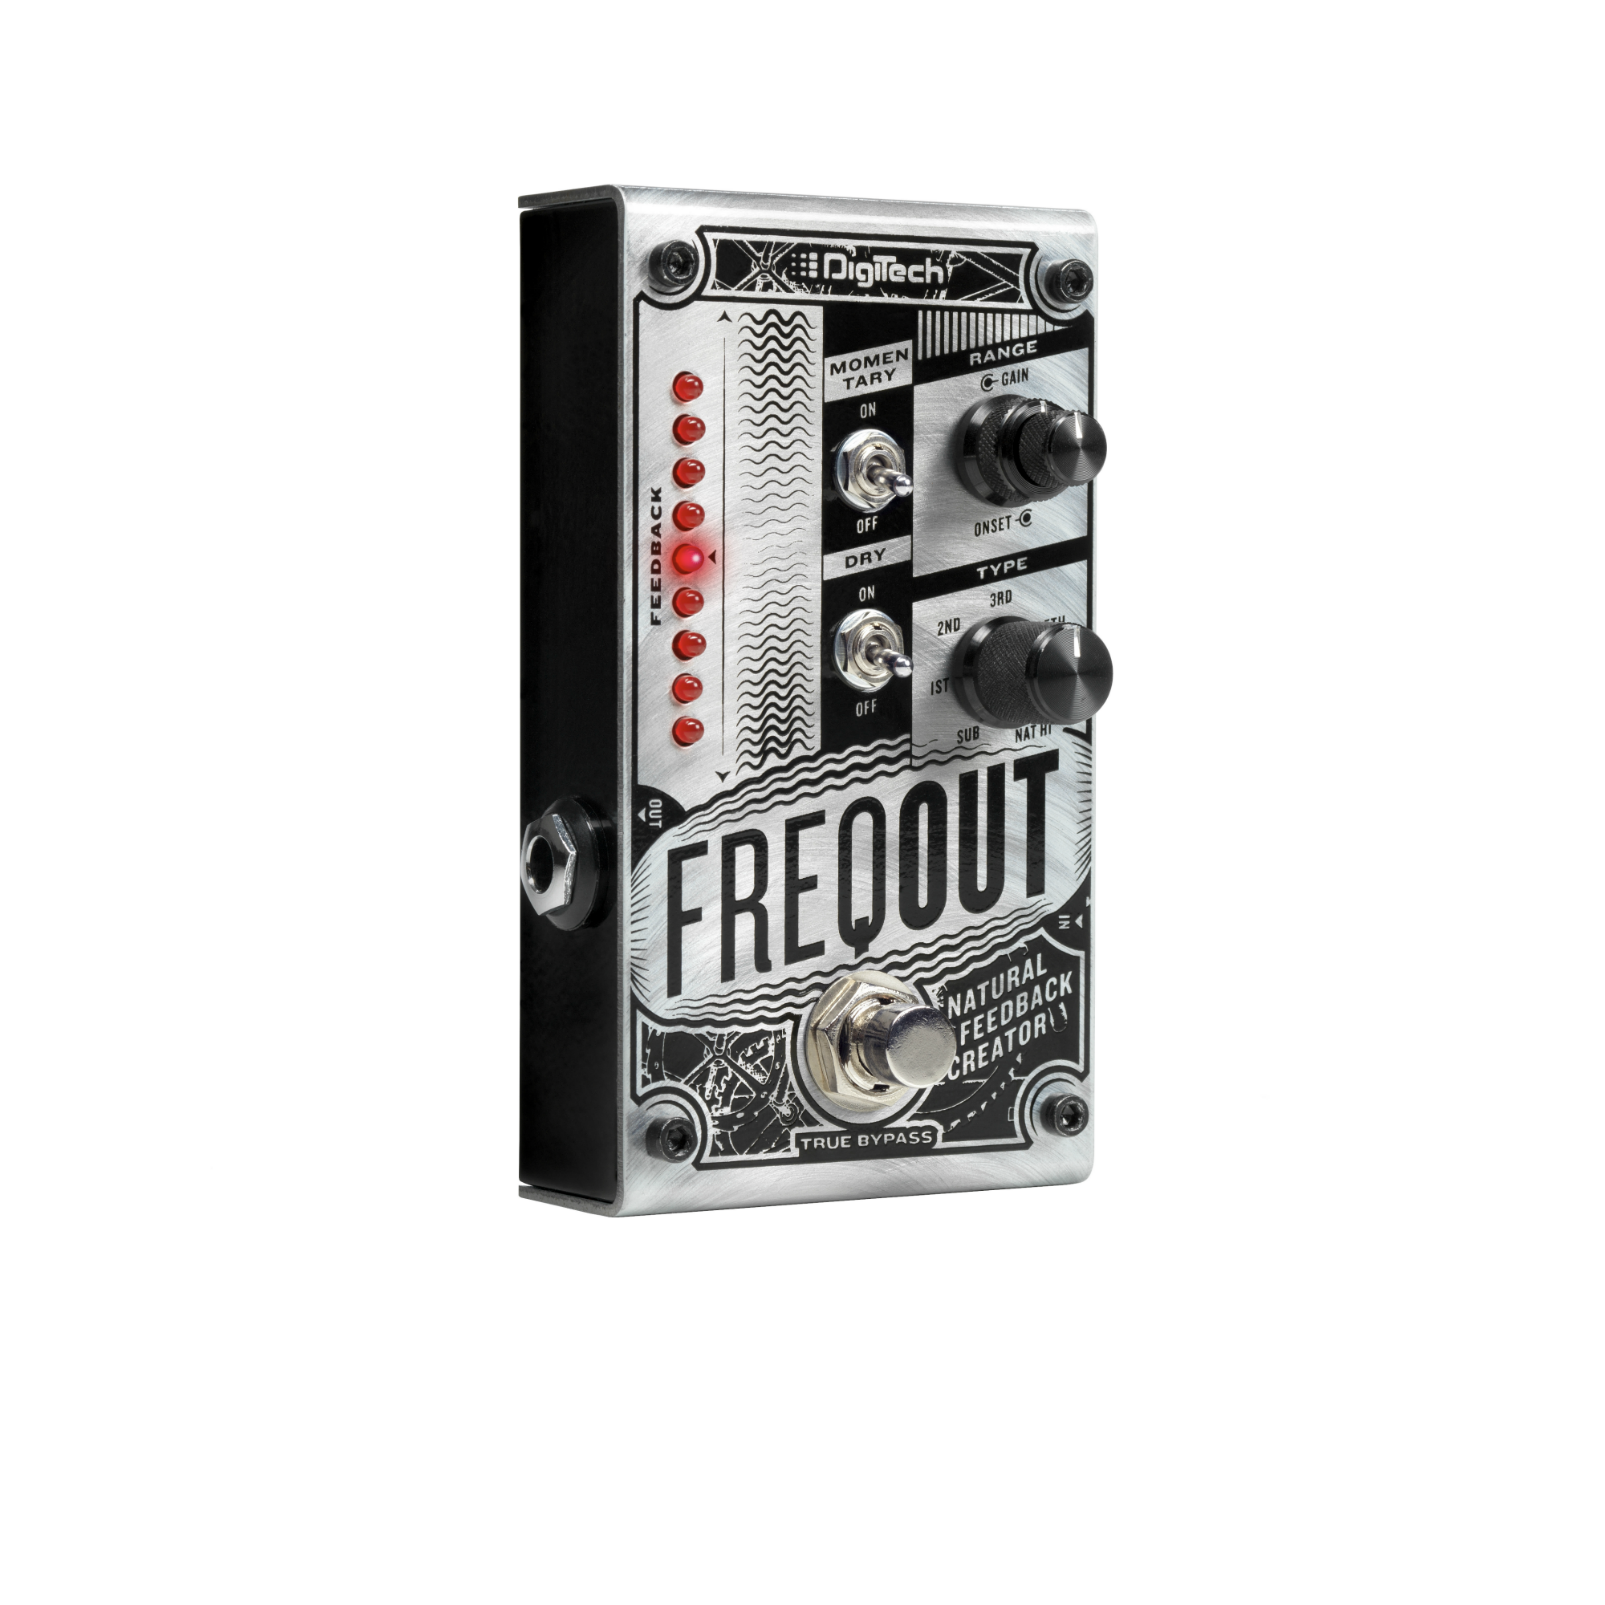 FreqOut - Silver - Natural Feedback Creator - Hero